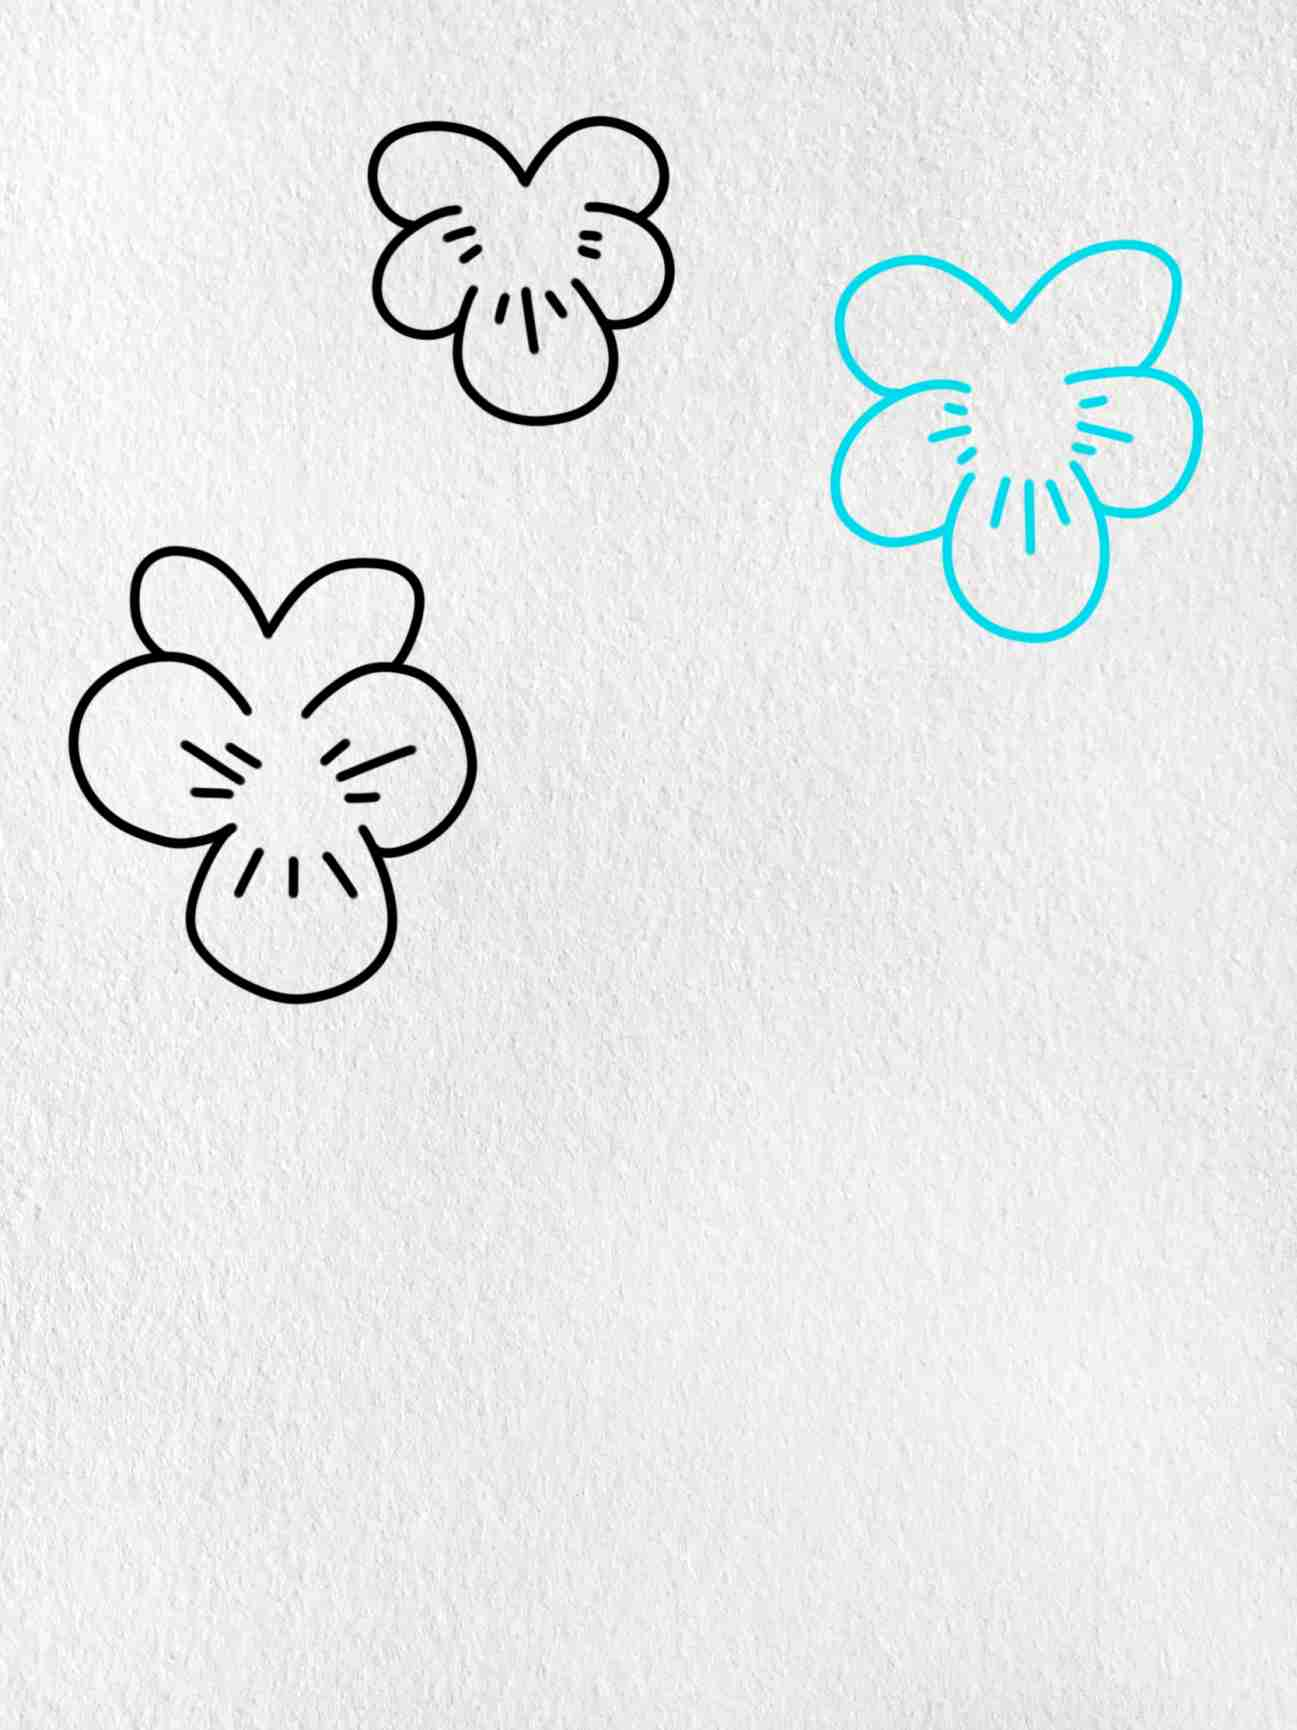 How To Draw A Violet: Step 3